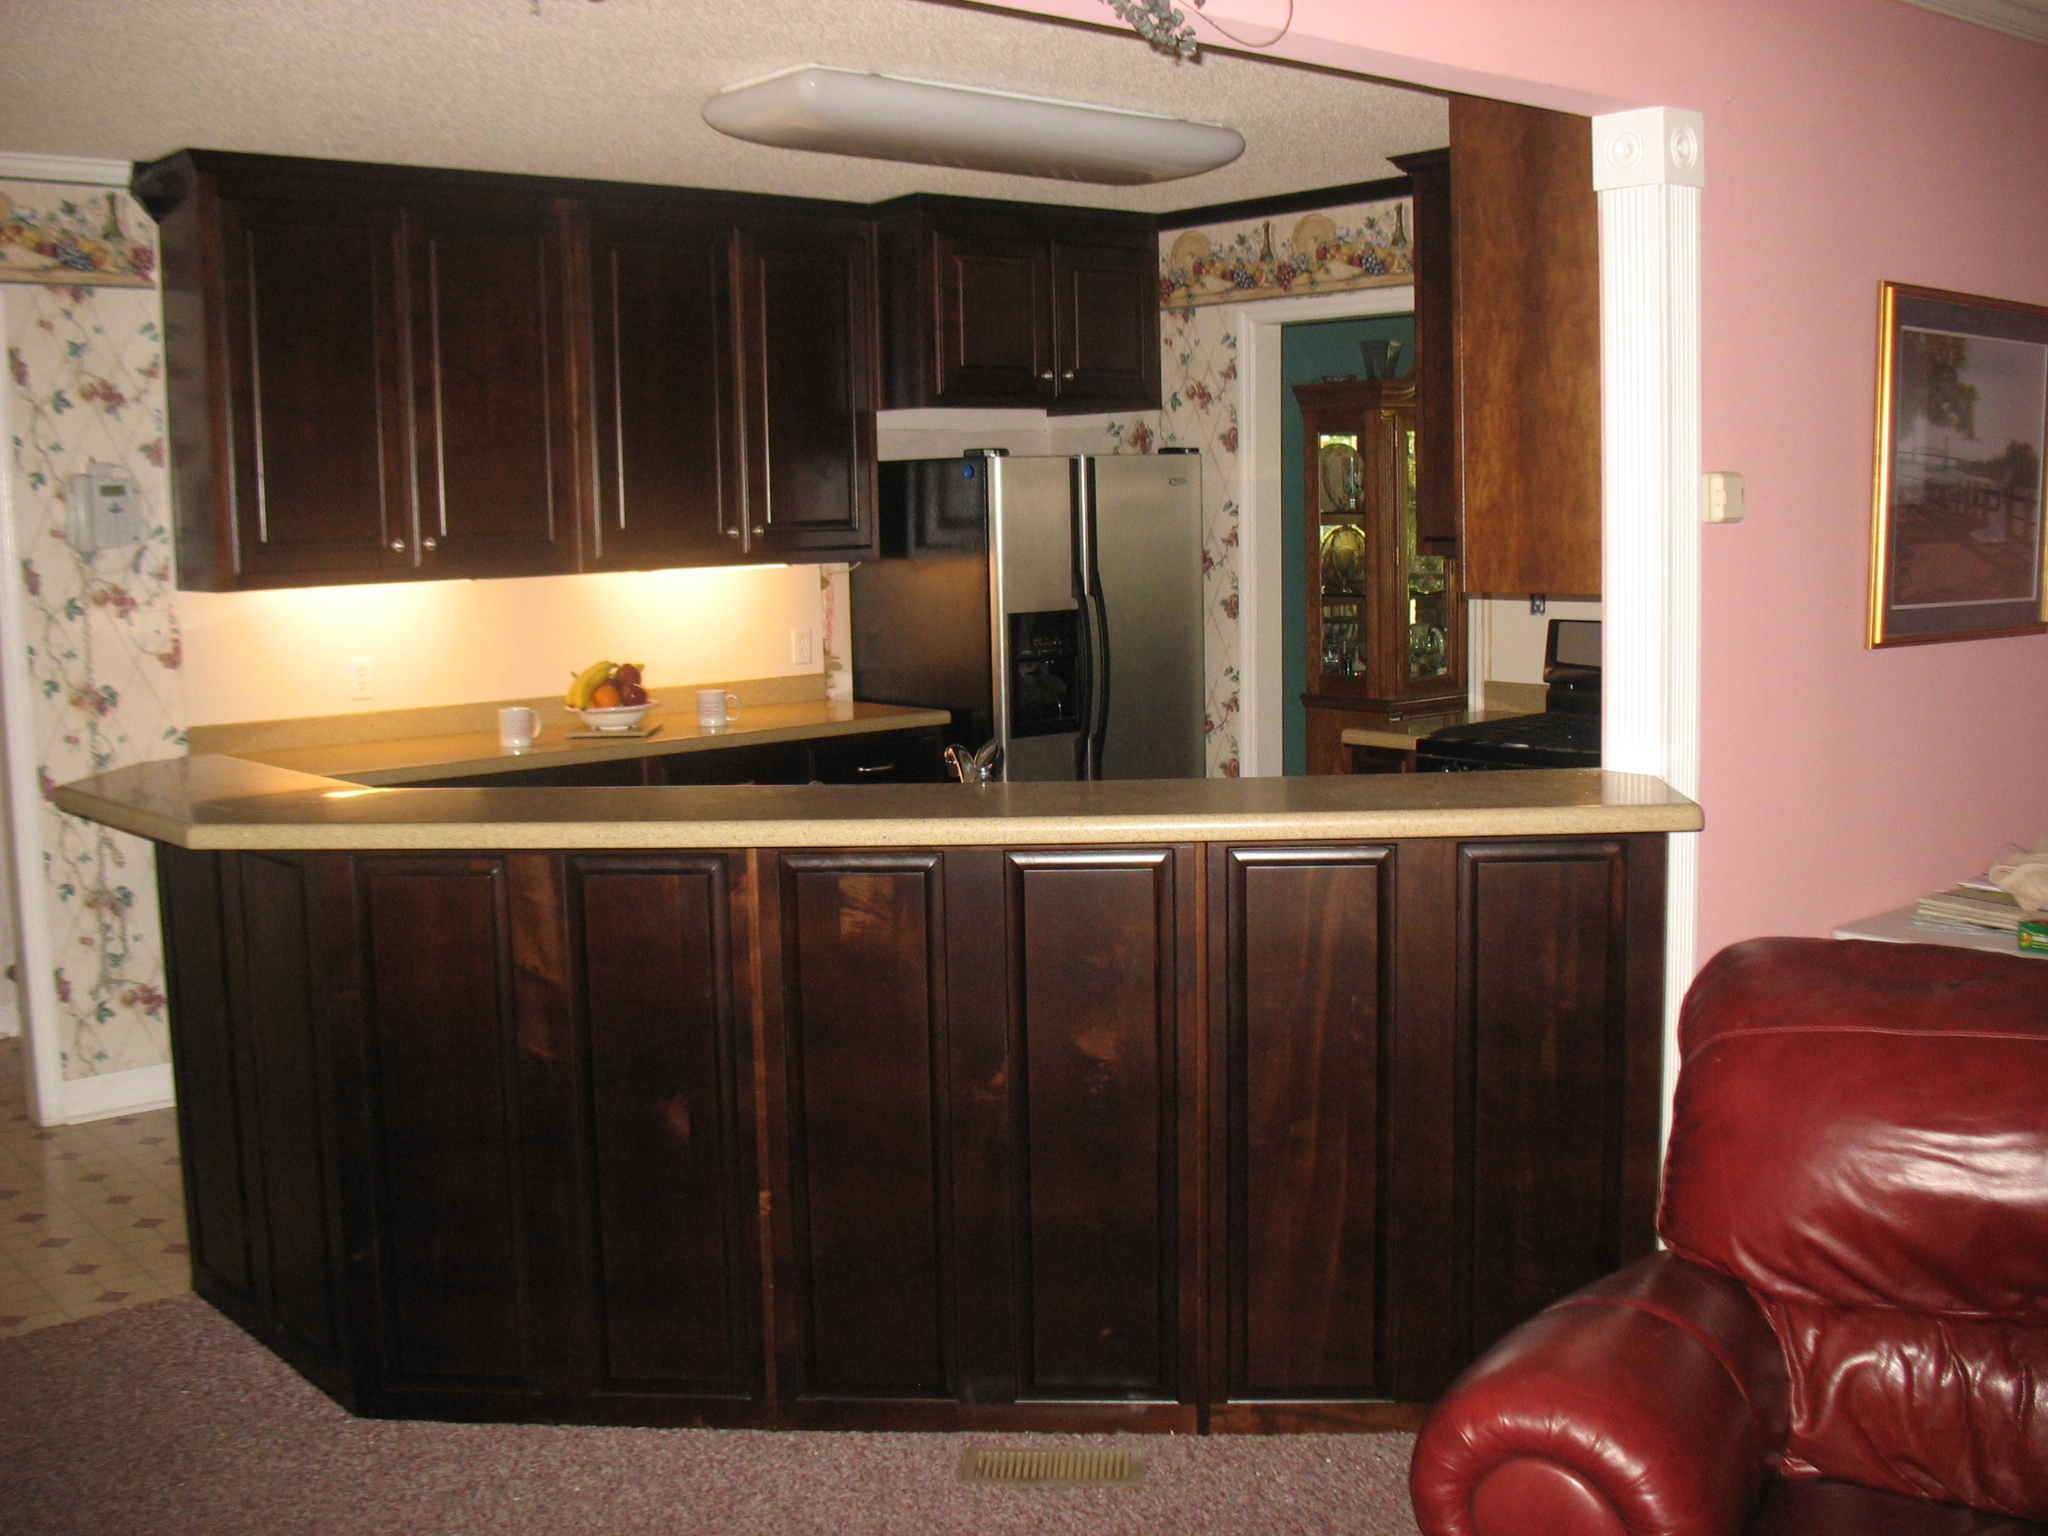 pin woodworking kitchen cabinets on pinterest kitchen cabinets crown molding woodworking talk